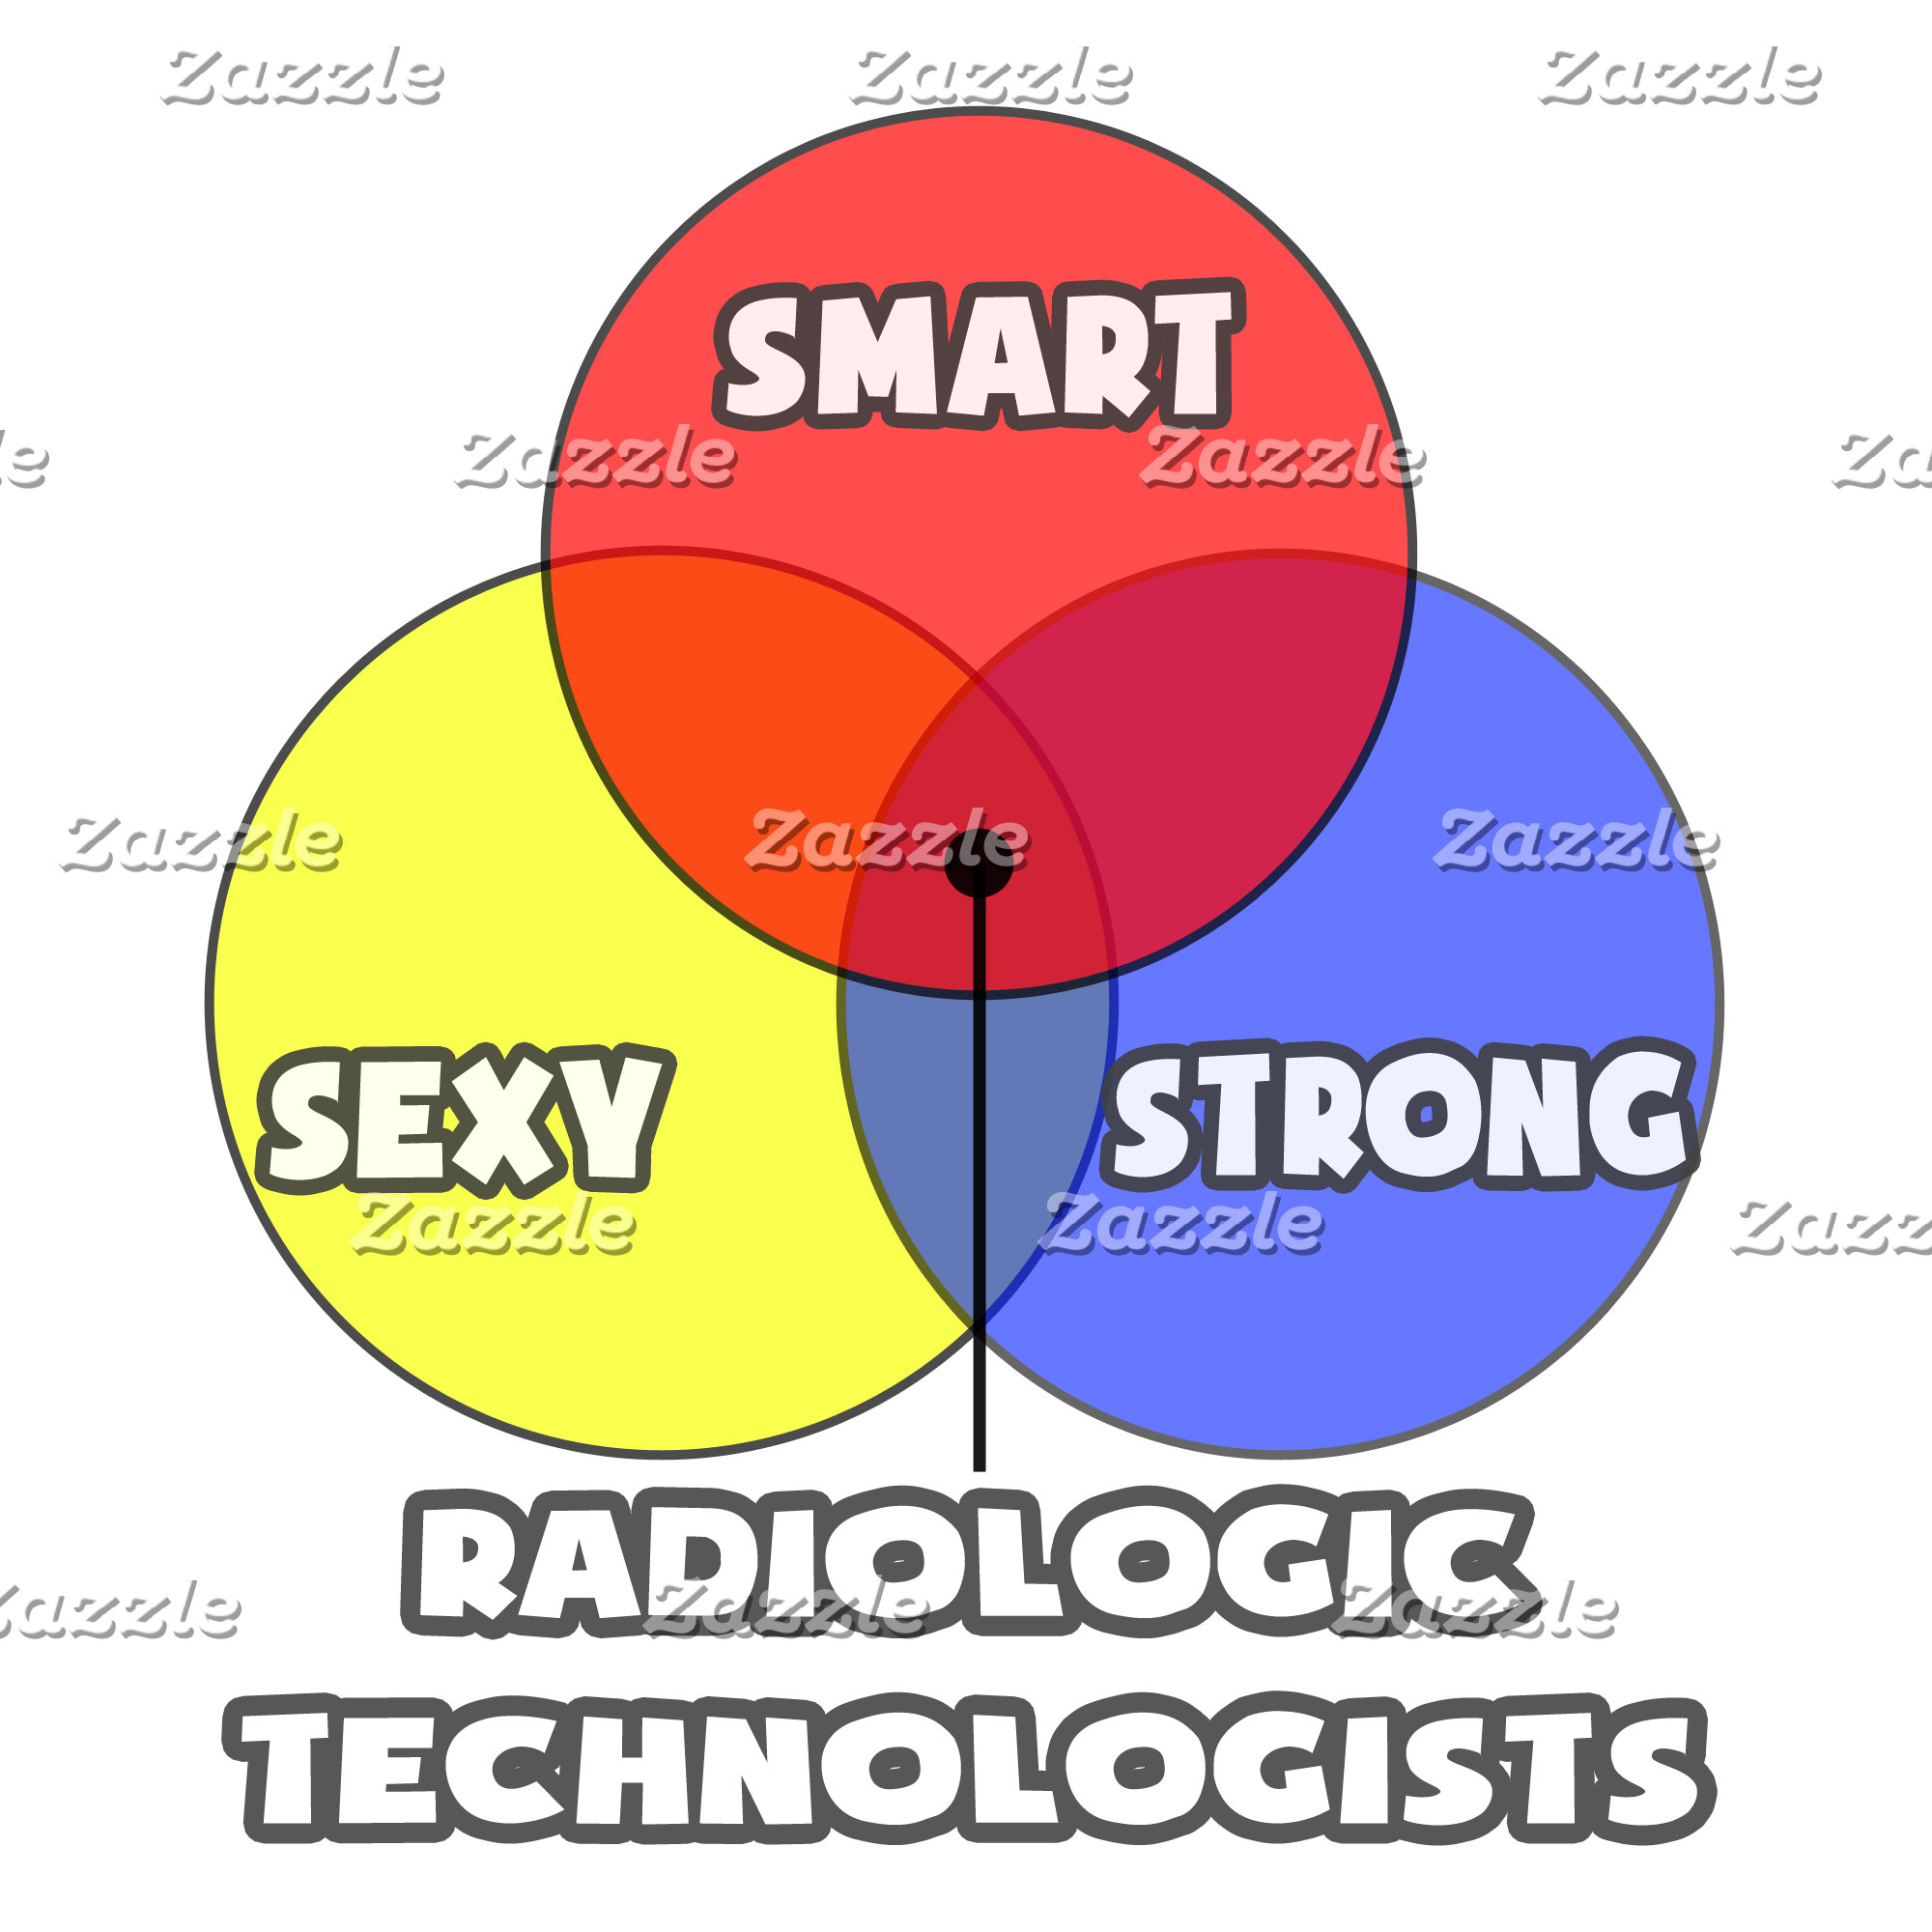 Venn Diagram .. Radiologic Technologists